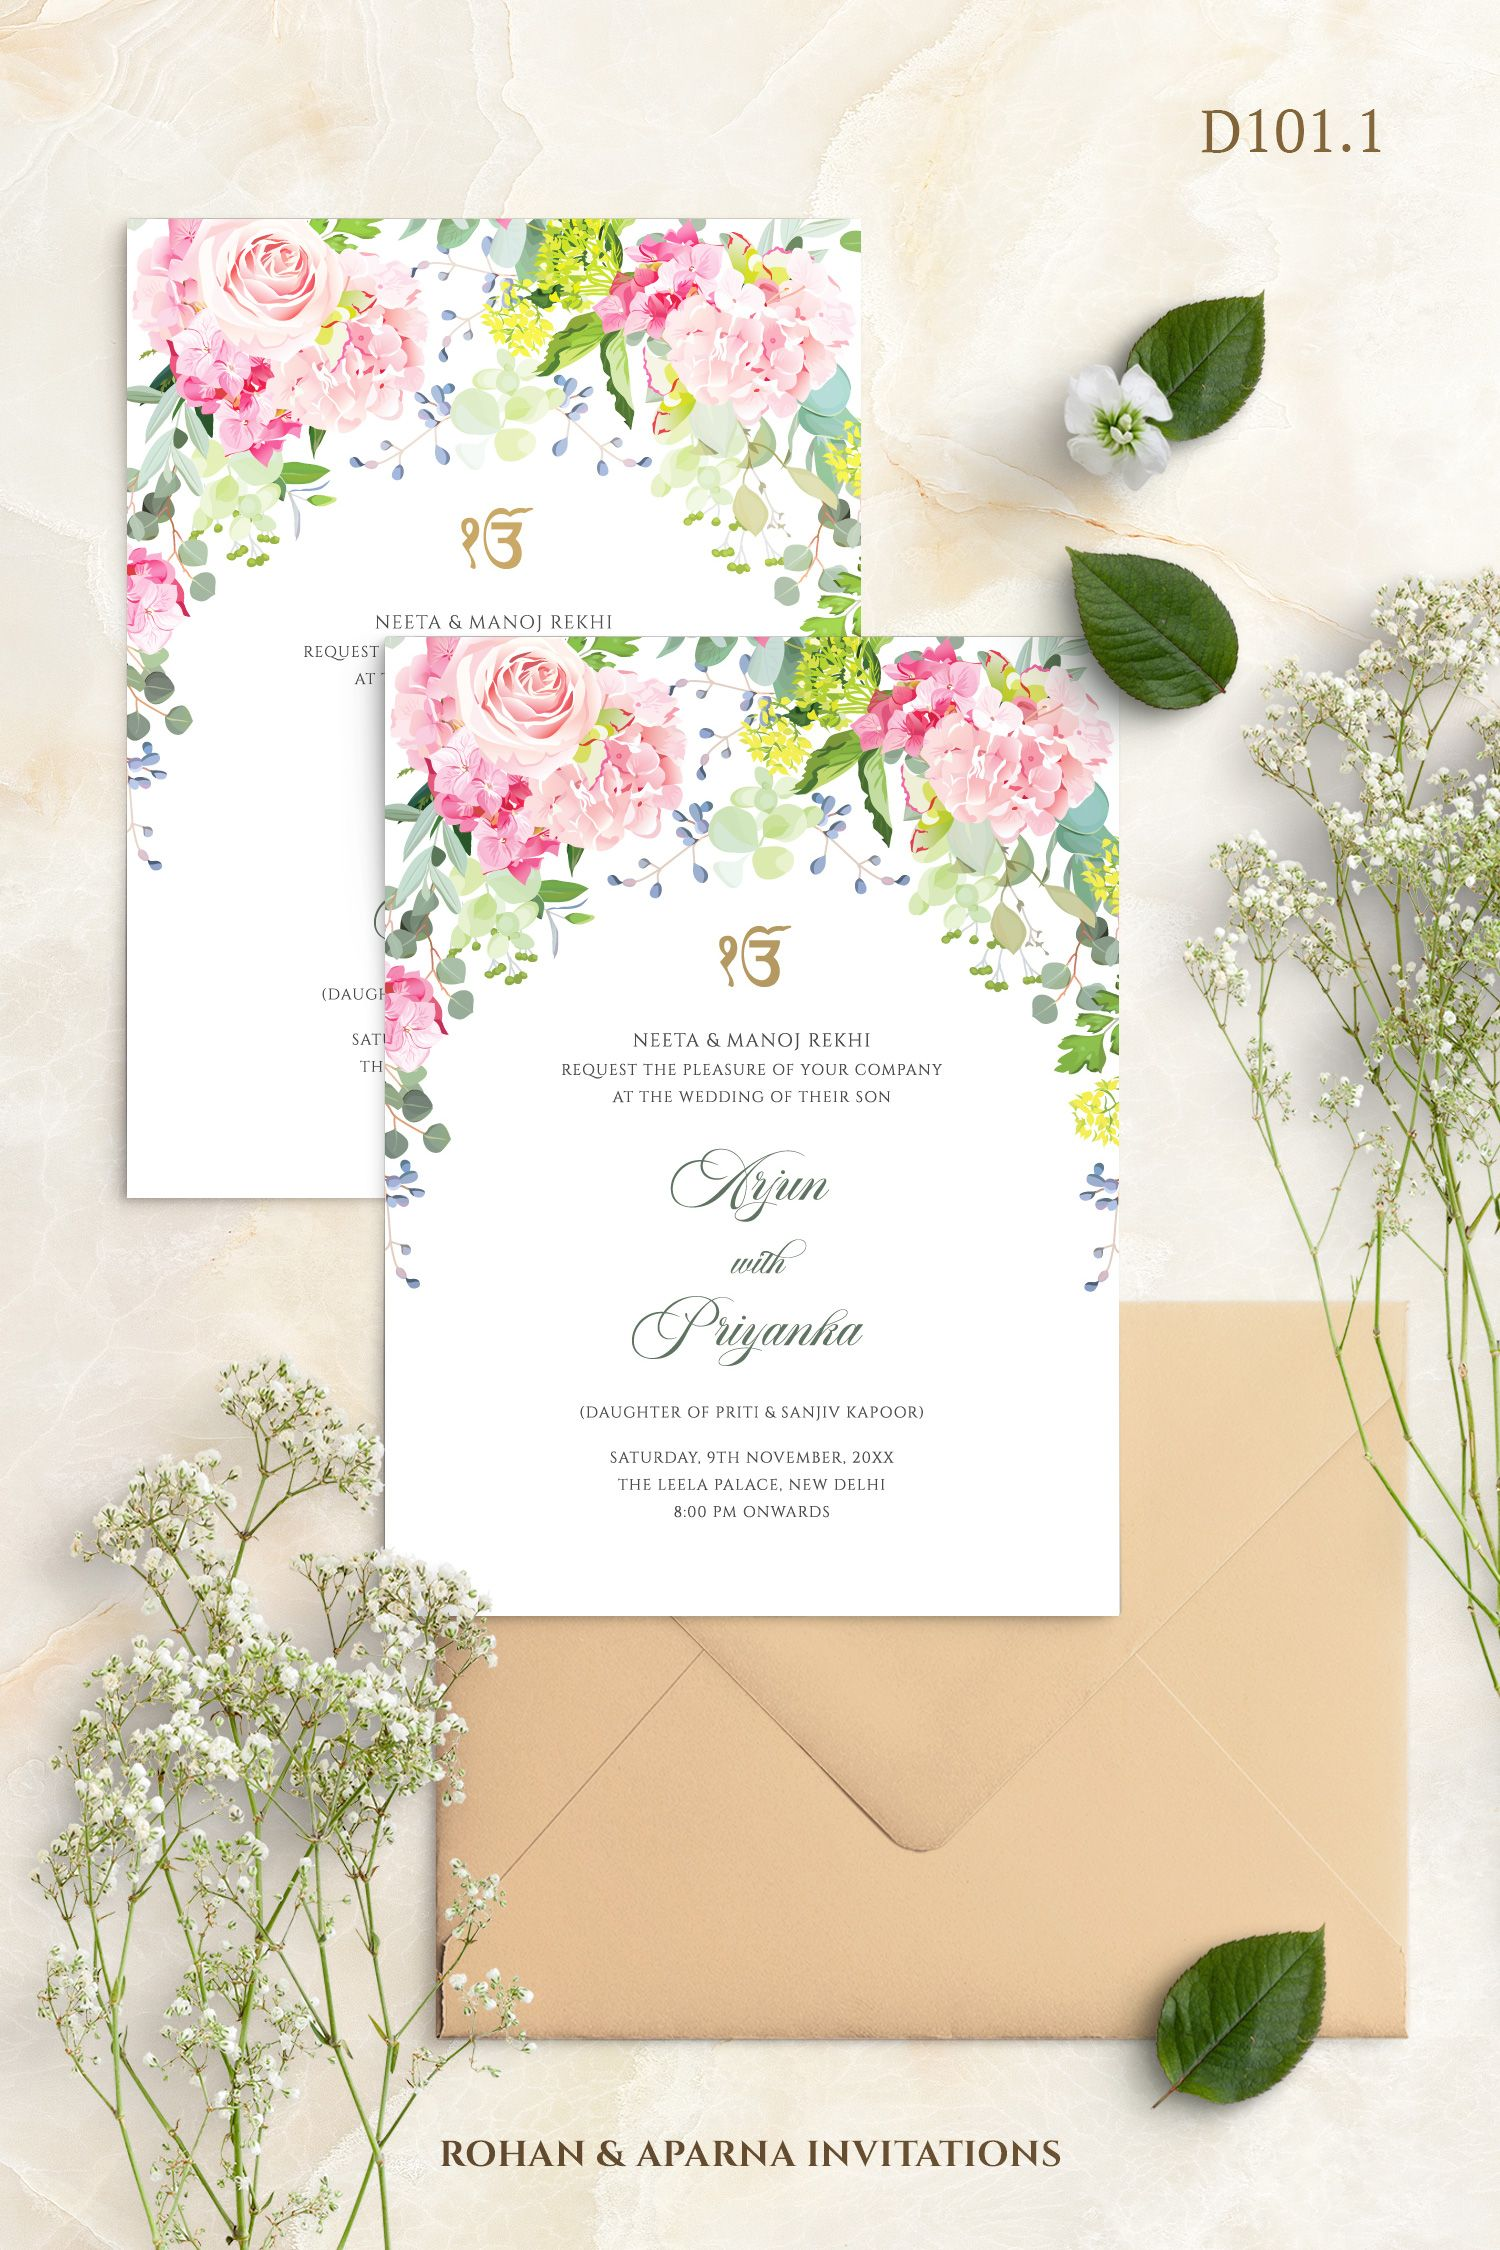 Colourful floral wedding invitation concept for a beautiful summer wedding. For more design ideas, visit www.rohanaparna.com  ——————————————— #rohanaparnainvitations #invitations #weddinginvitations #weddingcard #uniqueinvitations #weddingcards #uniqueweddinginvitations #weddingstationery #hinduweddingcards #luxurywedding #indianwedding #invitationideas #indianweddingcards #destinationwedding #weddingcards #christian #catholic #floral